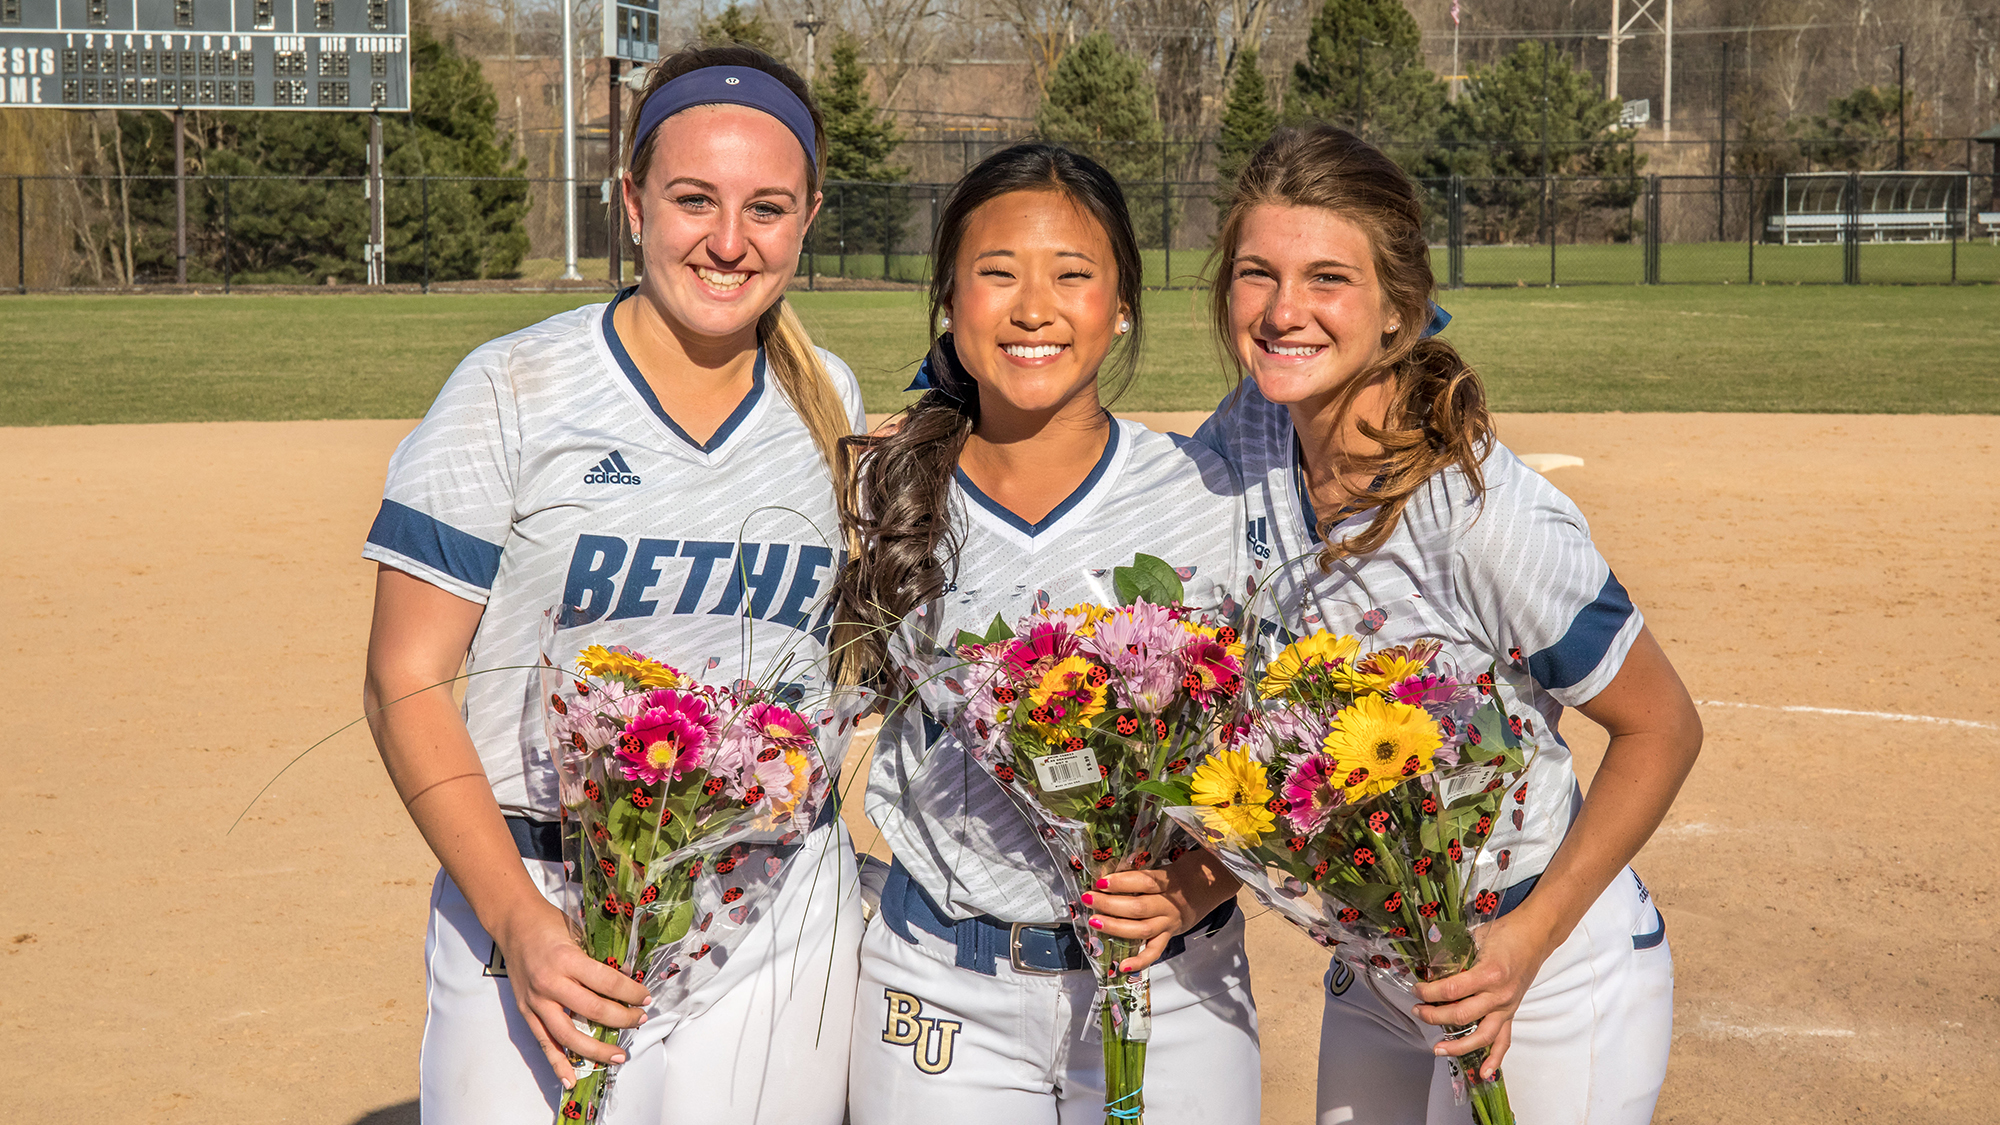 Bethel University TN Softball Scores Results Schedule Roster